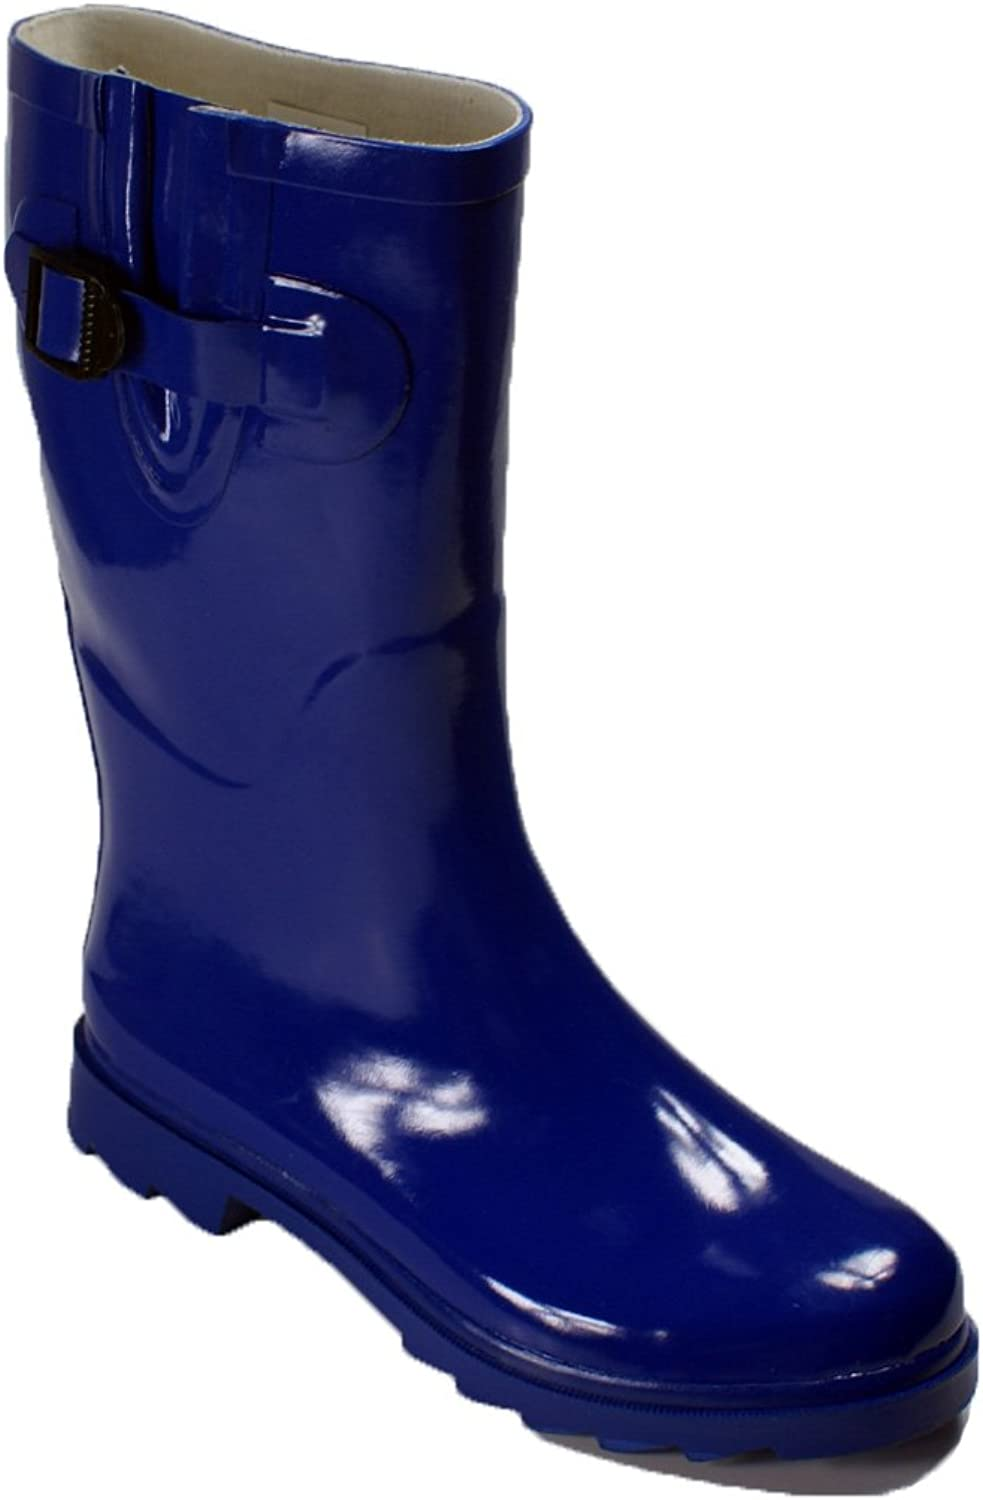 7color Womens Rain Boots Size Wellies Flat Wellington Knee High Festival Welly Snow